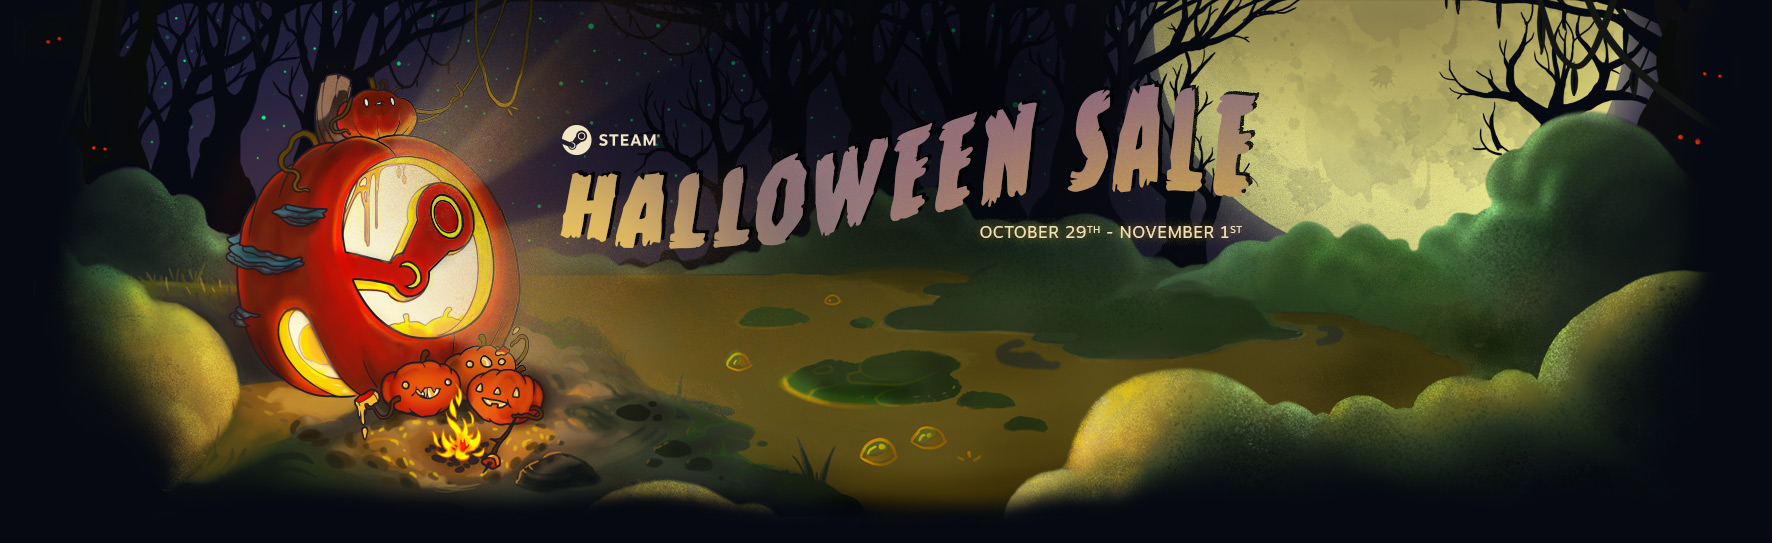 ended] steam halloween sale 2018 (please share your thought